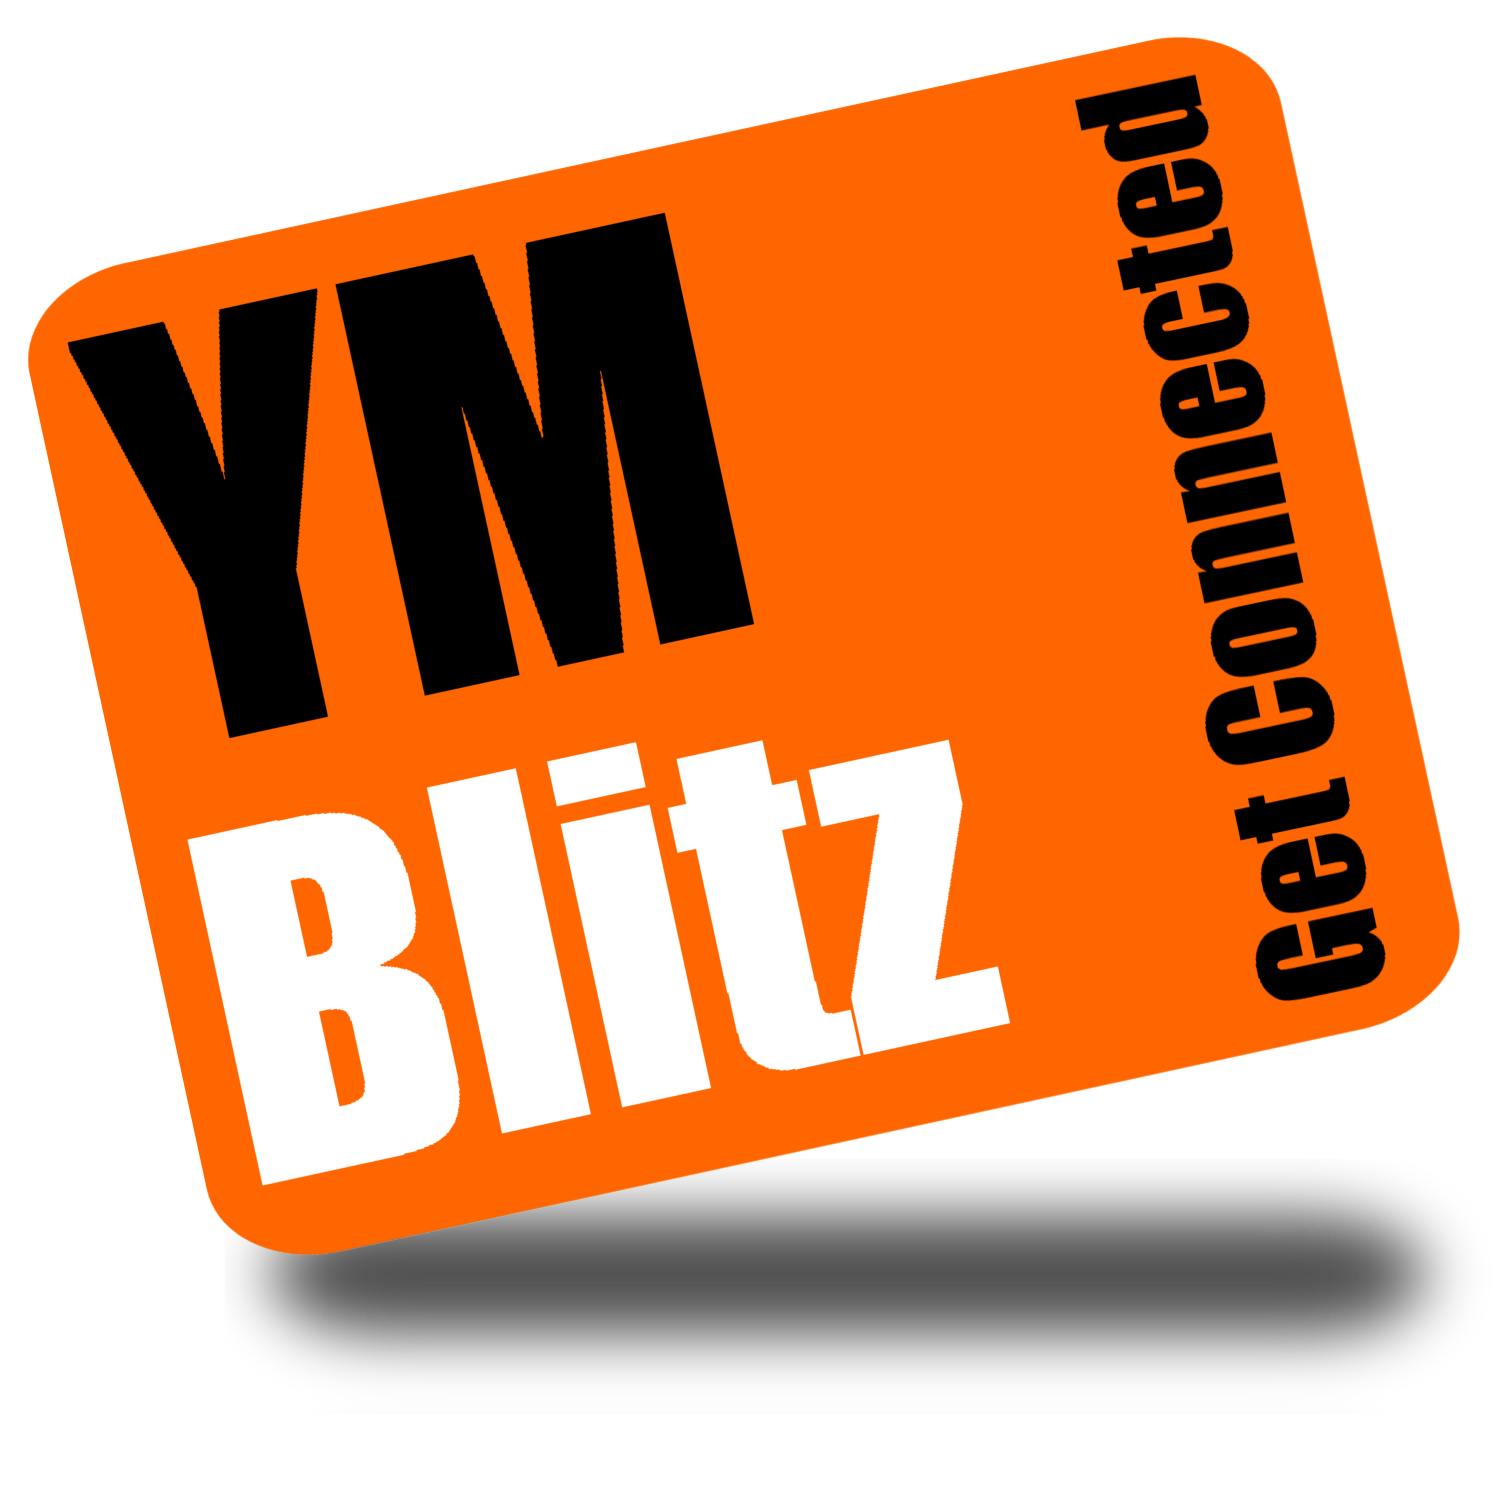 Youth Ministry Blitz